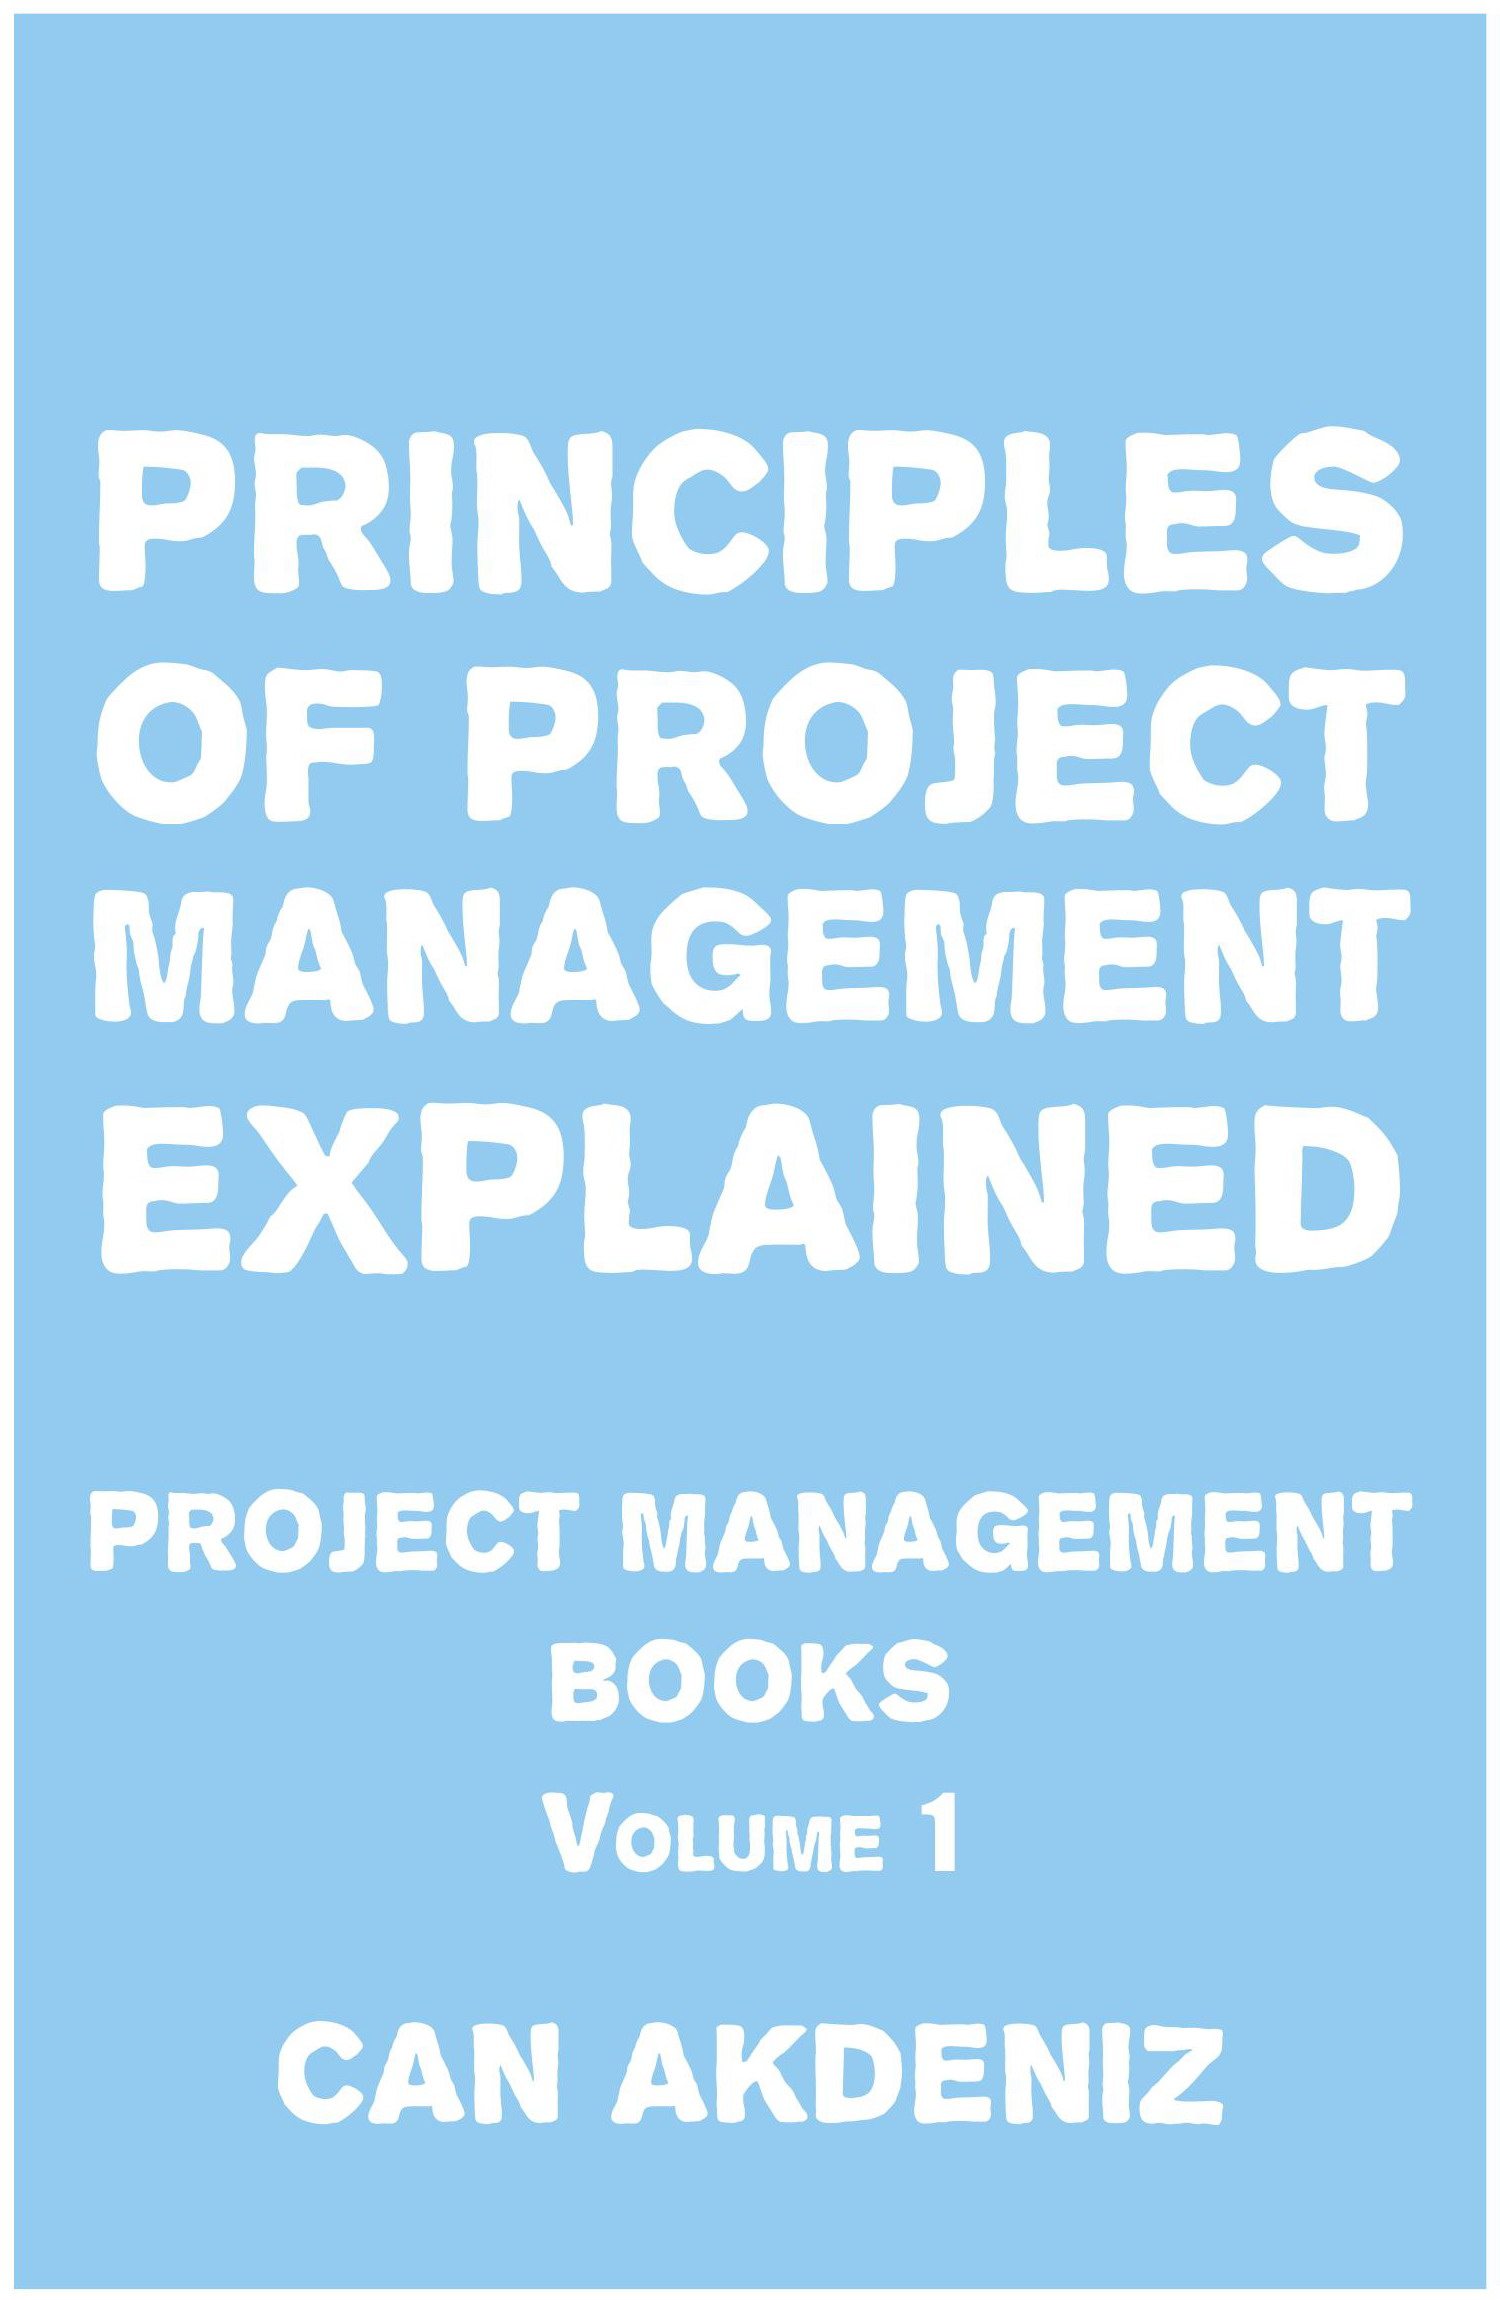 the principles of project management As a project manager, the most important factor in achieving project success will be your understanding of the principles of project management this book will show you that project management isn't rocket science: using the information contained in this book, you'll deliver projects on time and on budget, again and again.